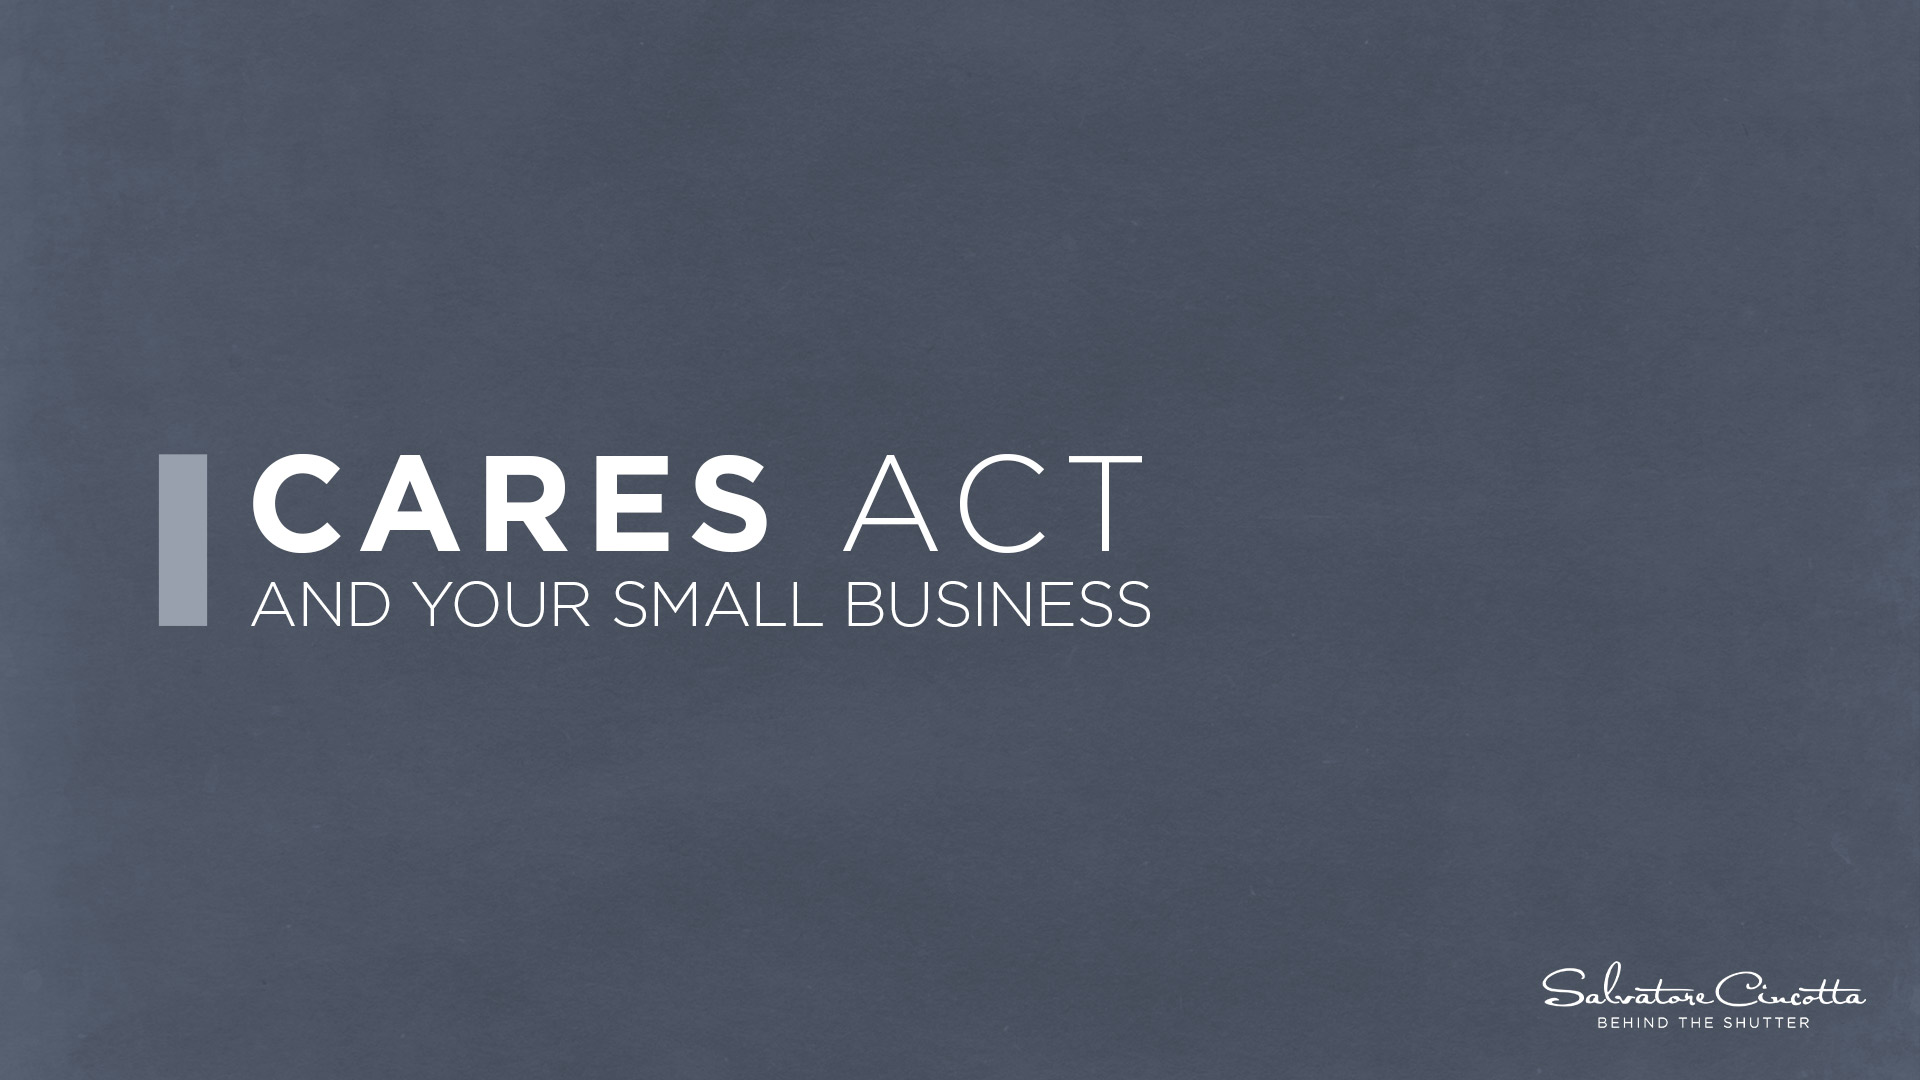 CARES ACT RELIEF BILL FOR SMALL BUSINESSES AND PHOTOGRAPHERS